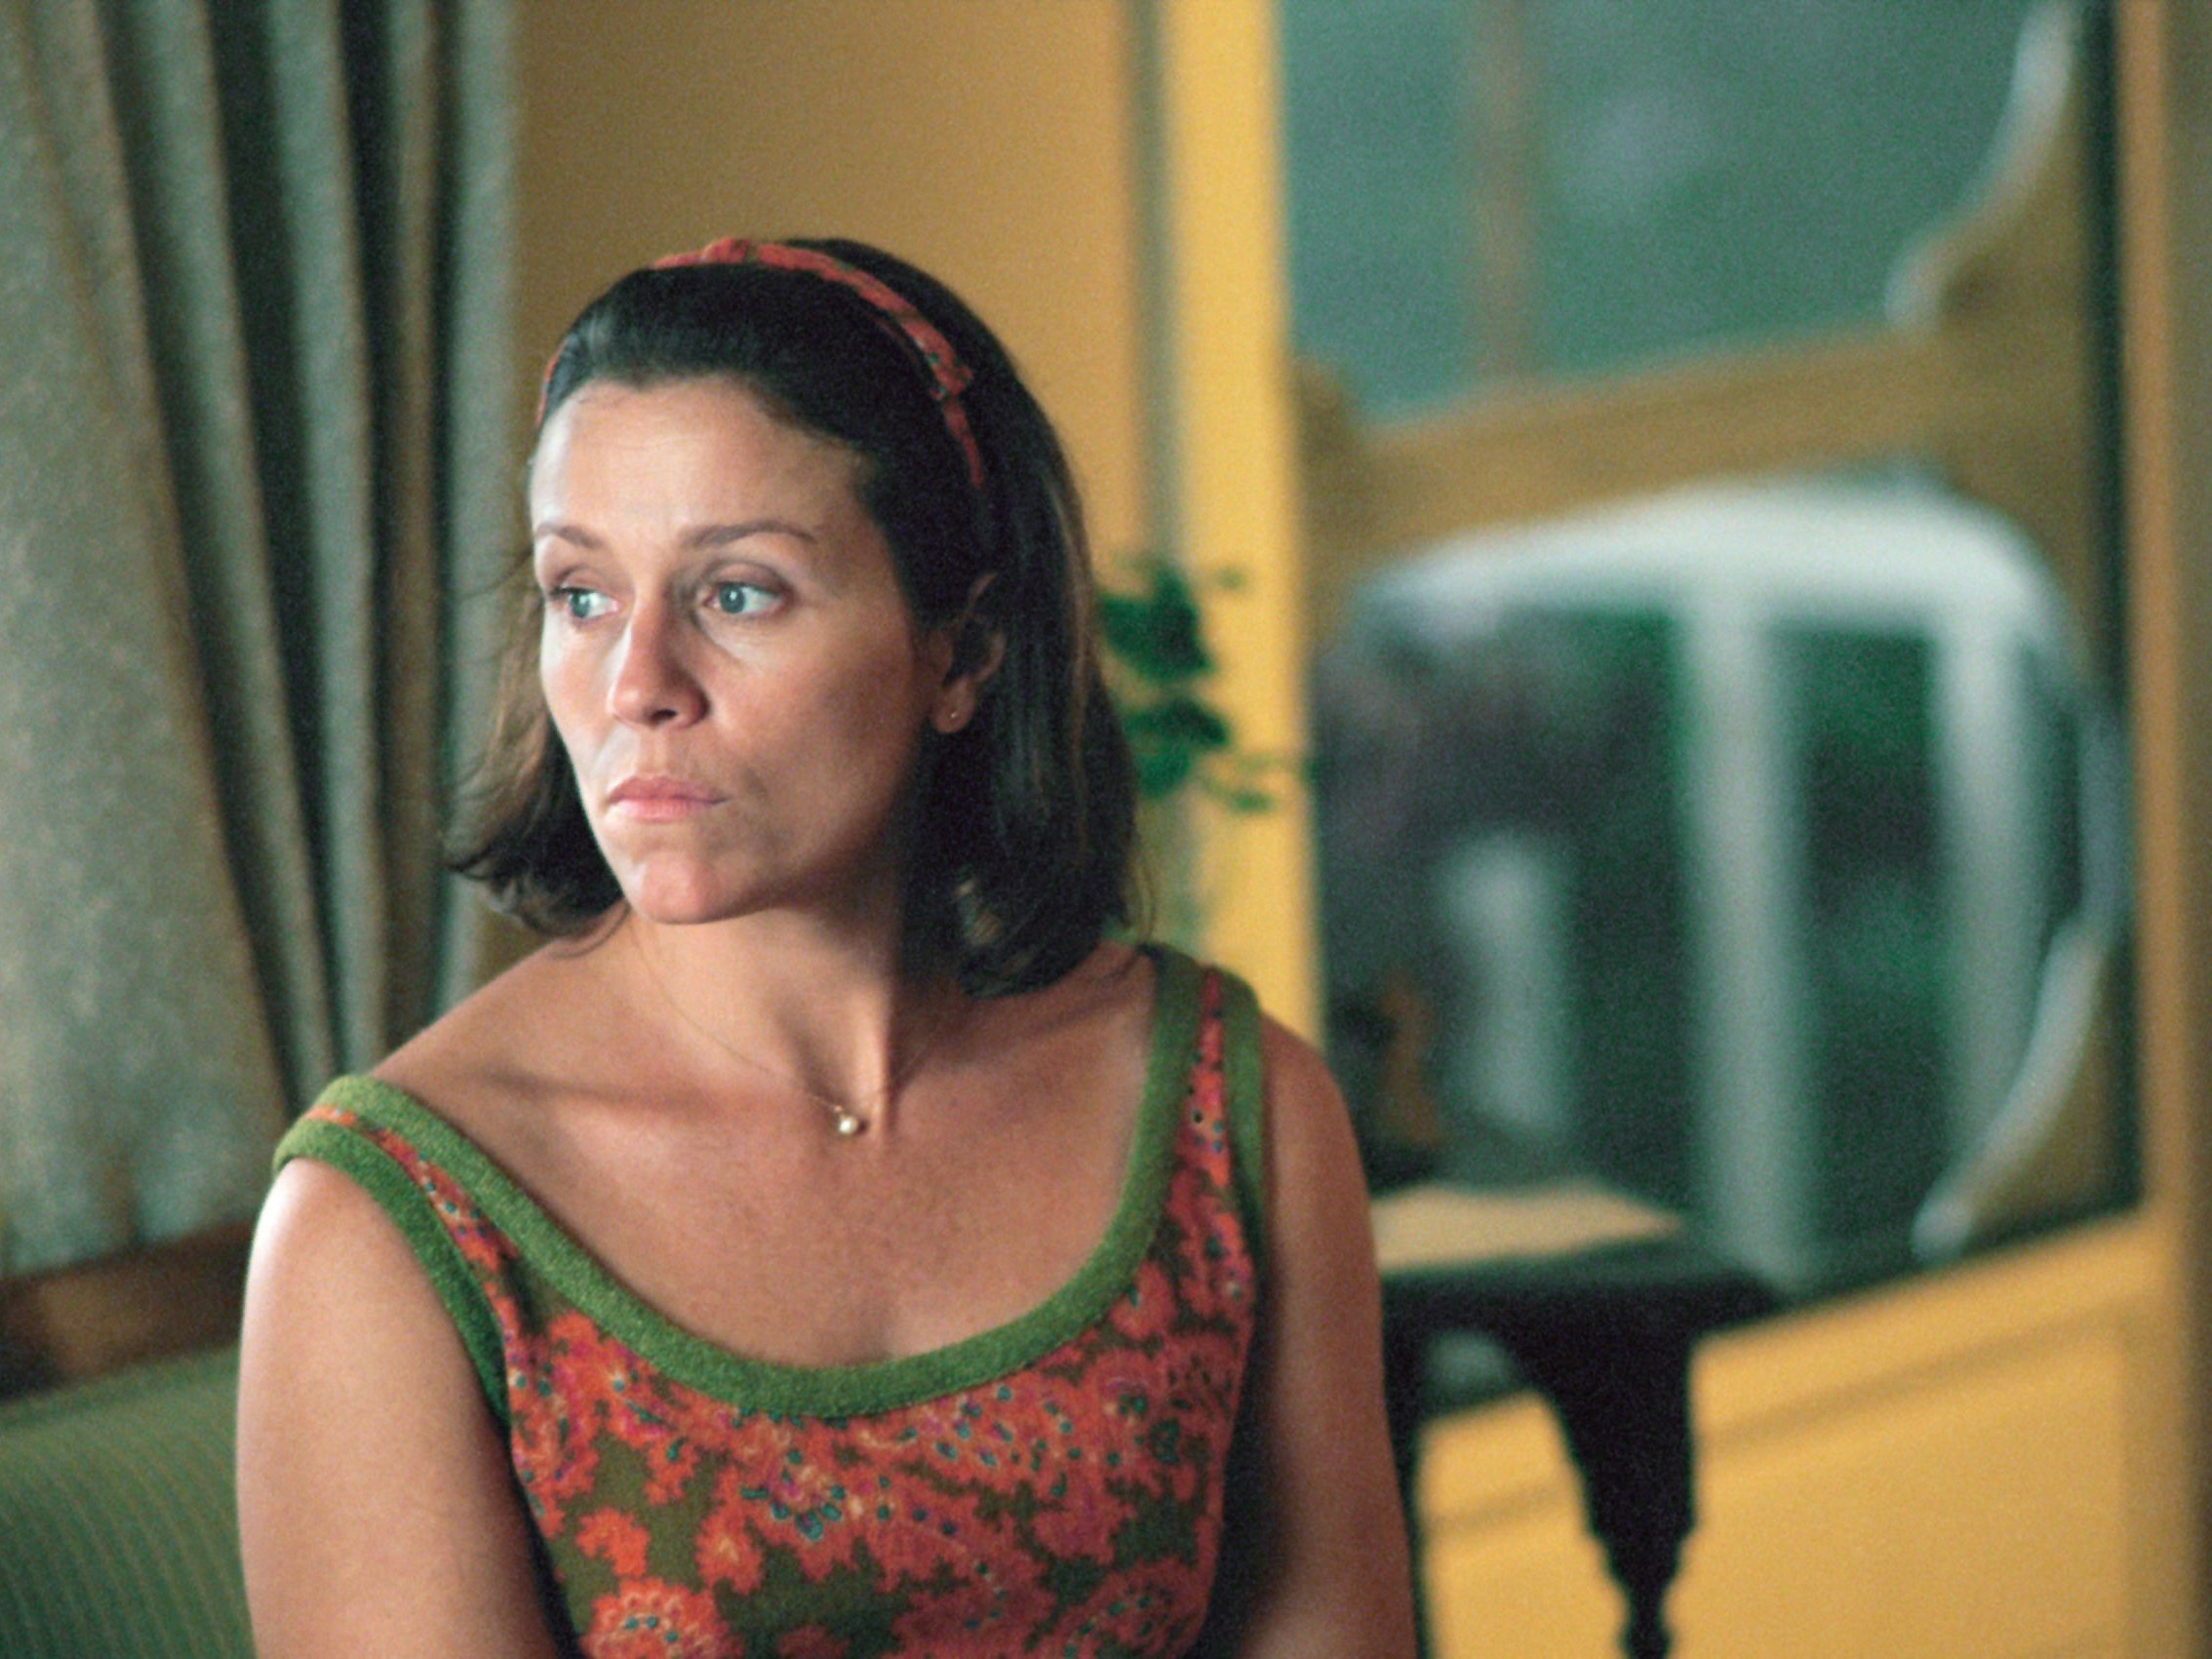 Frances Mcdormand Phone number, Email Id, Fanmail, Instagram, Tiktok, and Contact Details